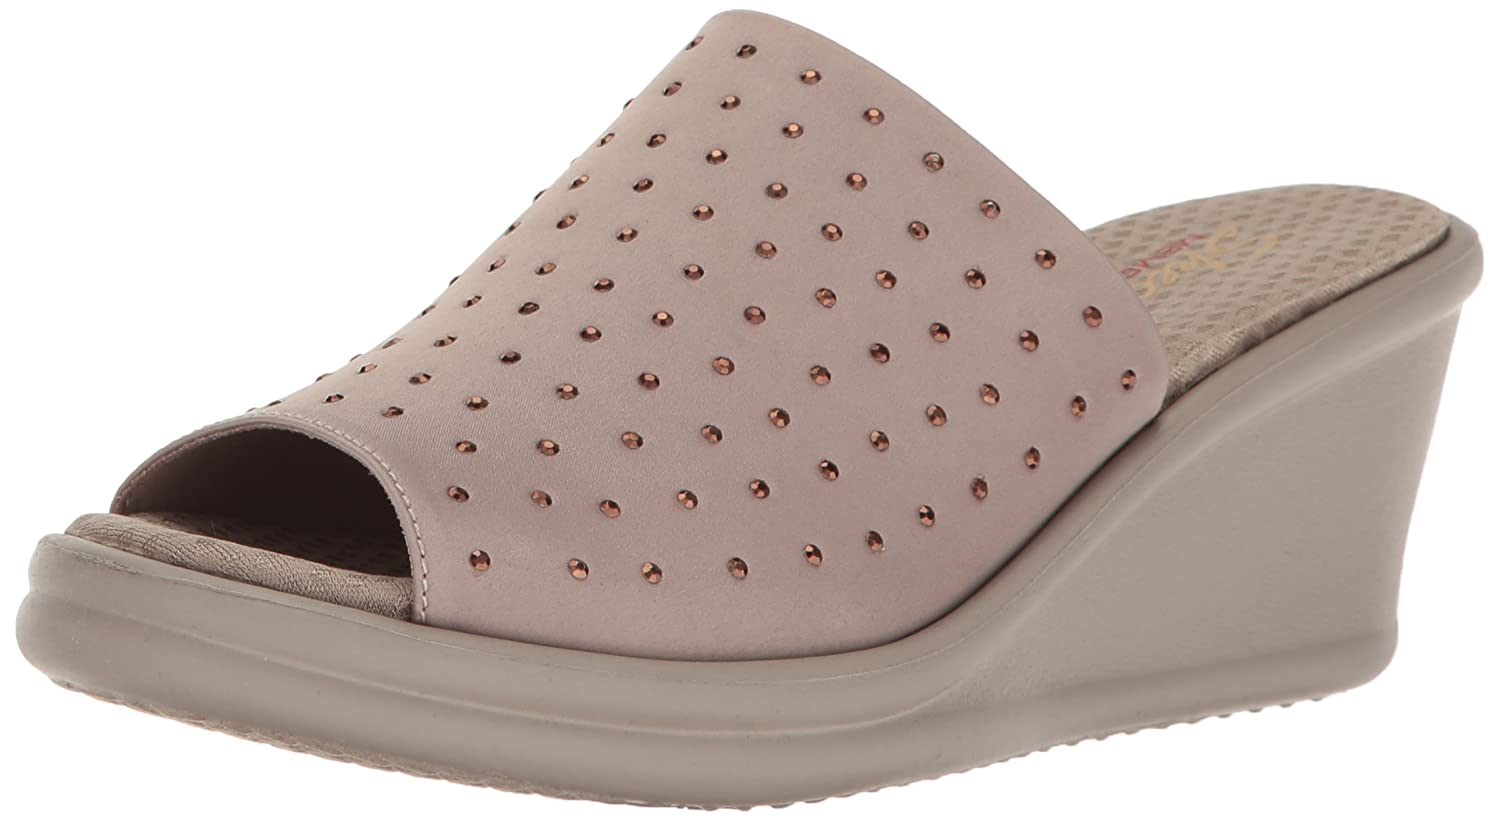 Skechers Cali Women's Rumblers Silky Smooth Wedge Sandal -